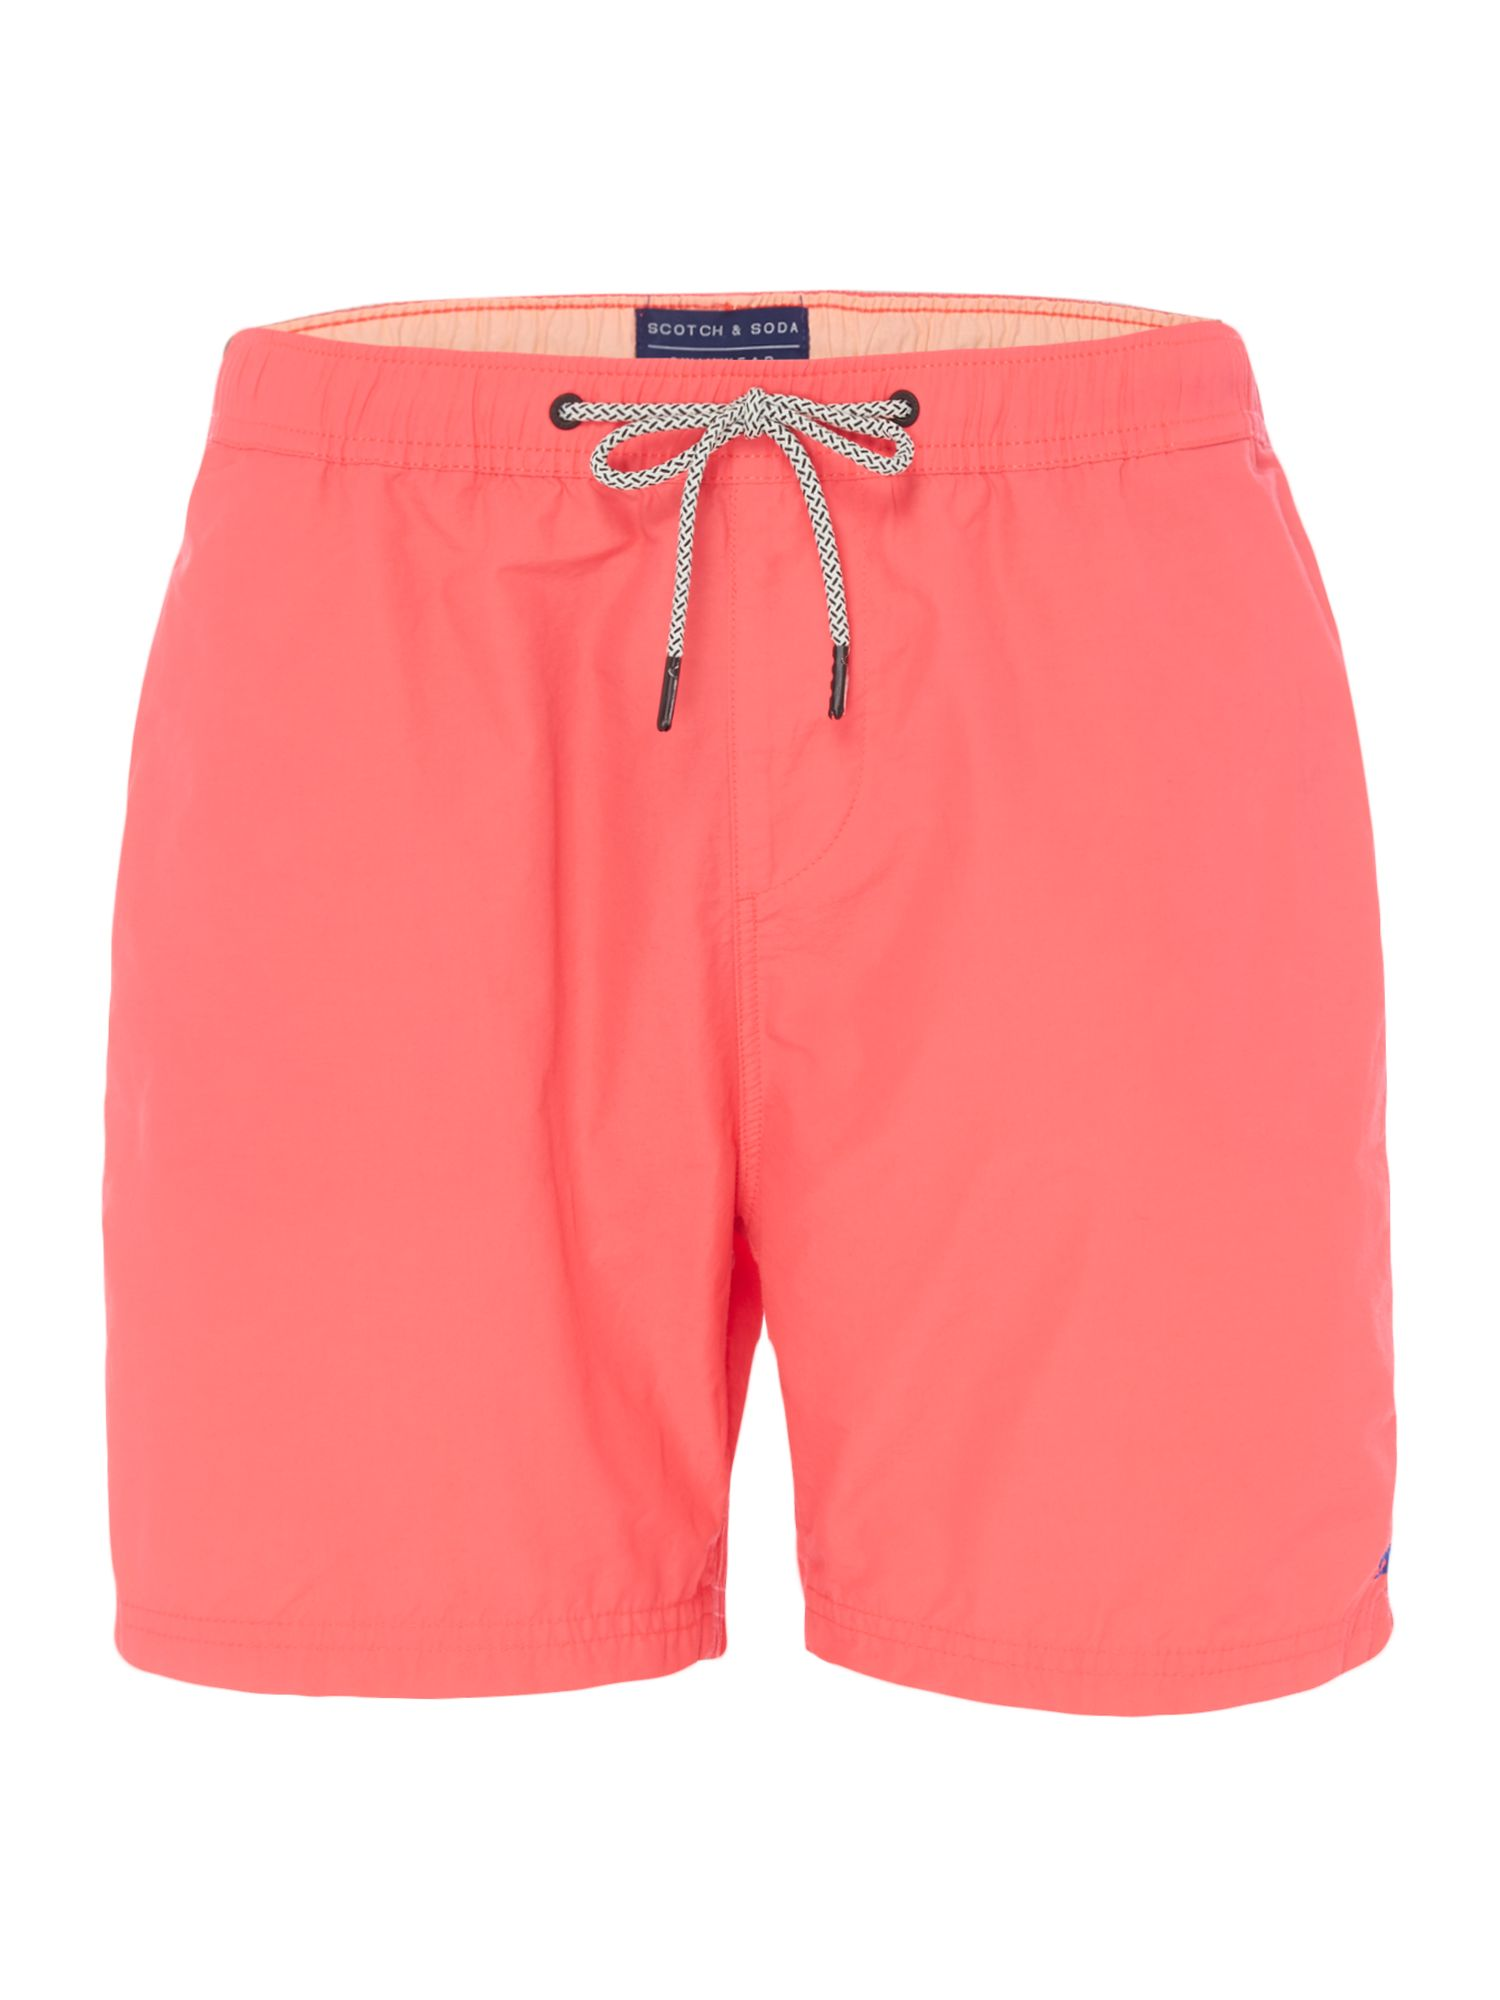 Men's Scotch & Soda Mid-length Colourful Swim Shorts, Red